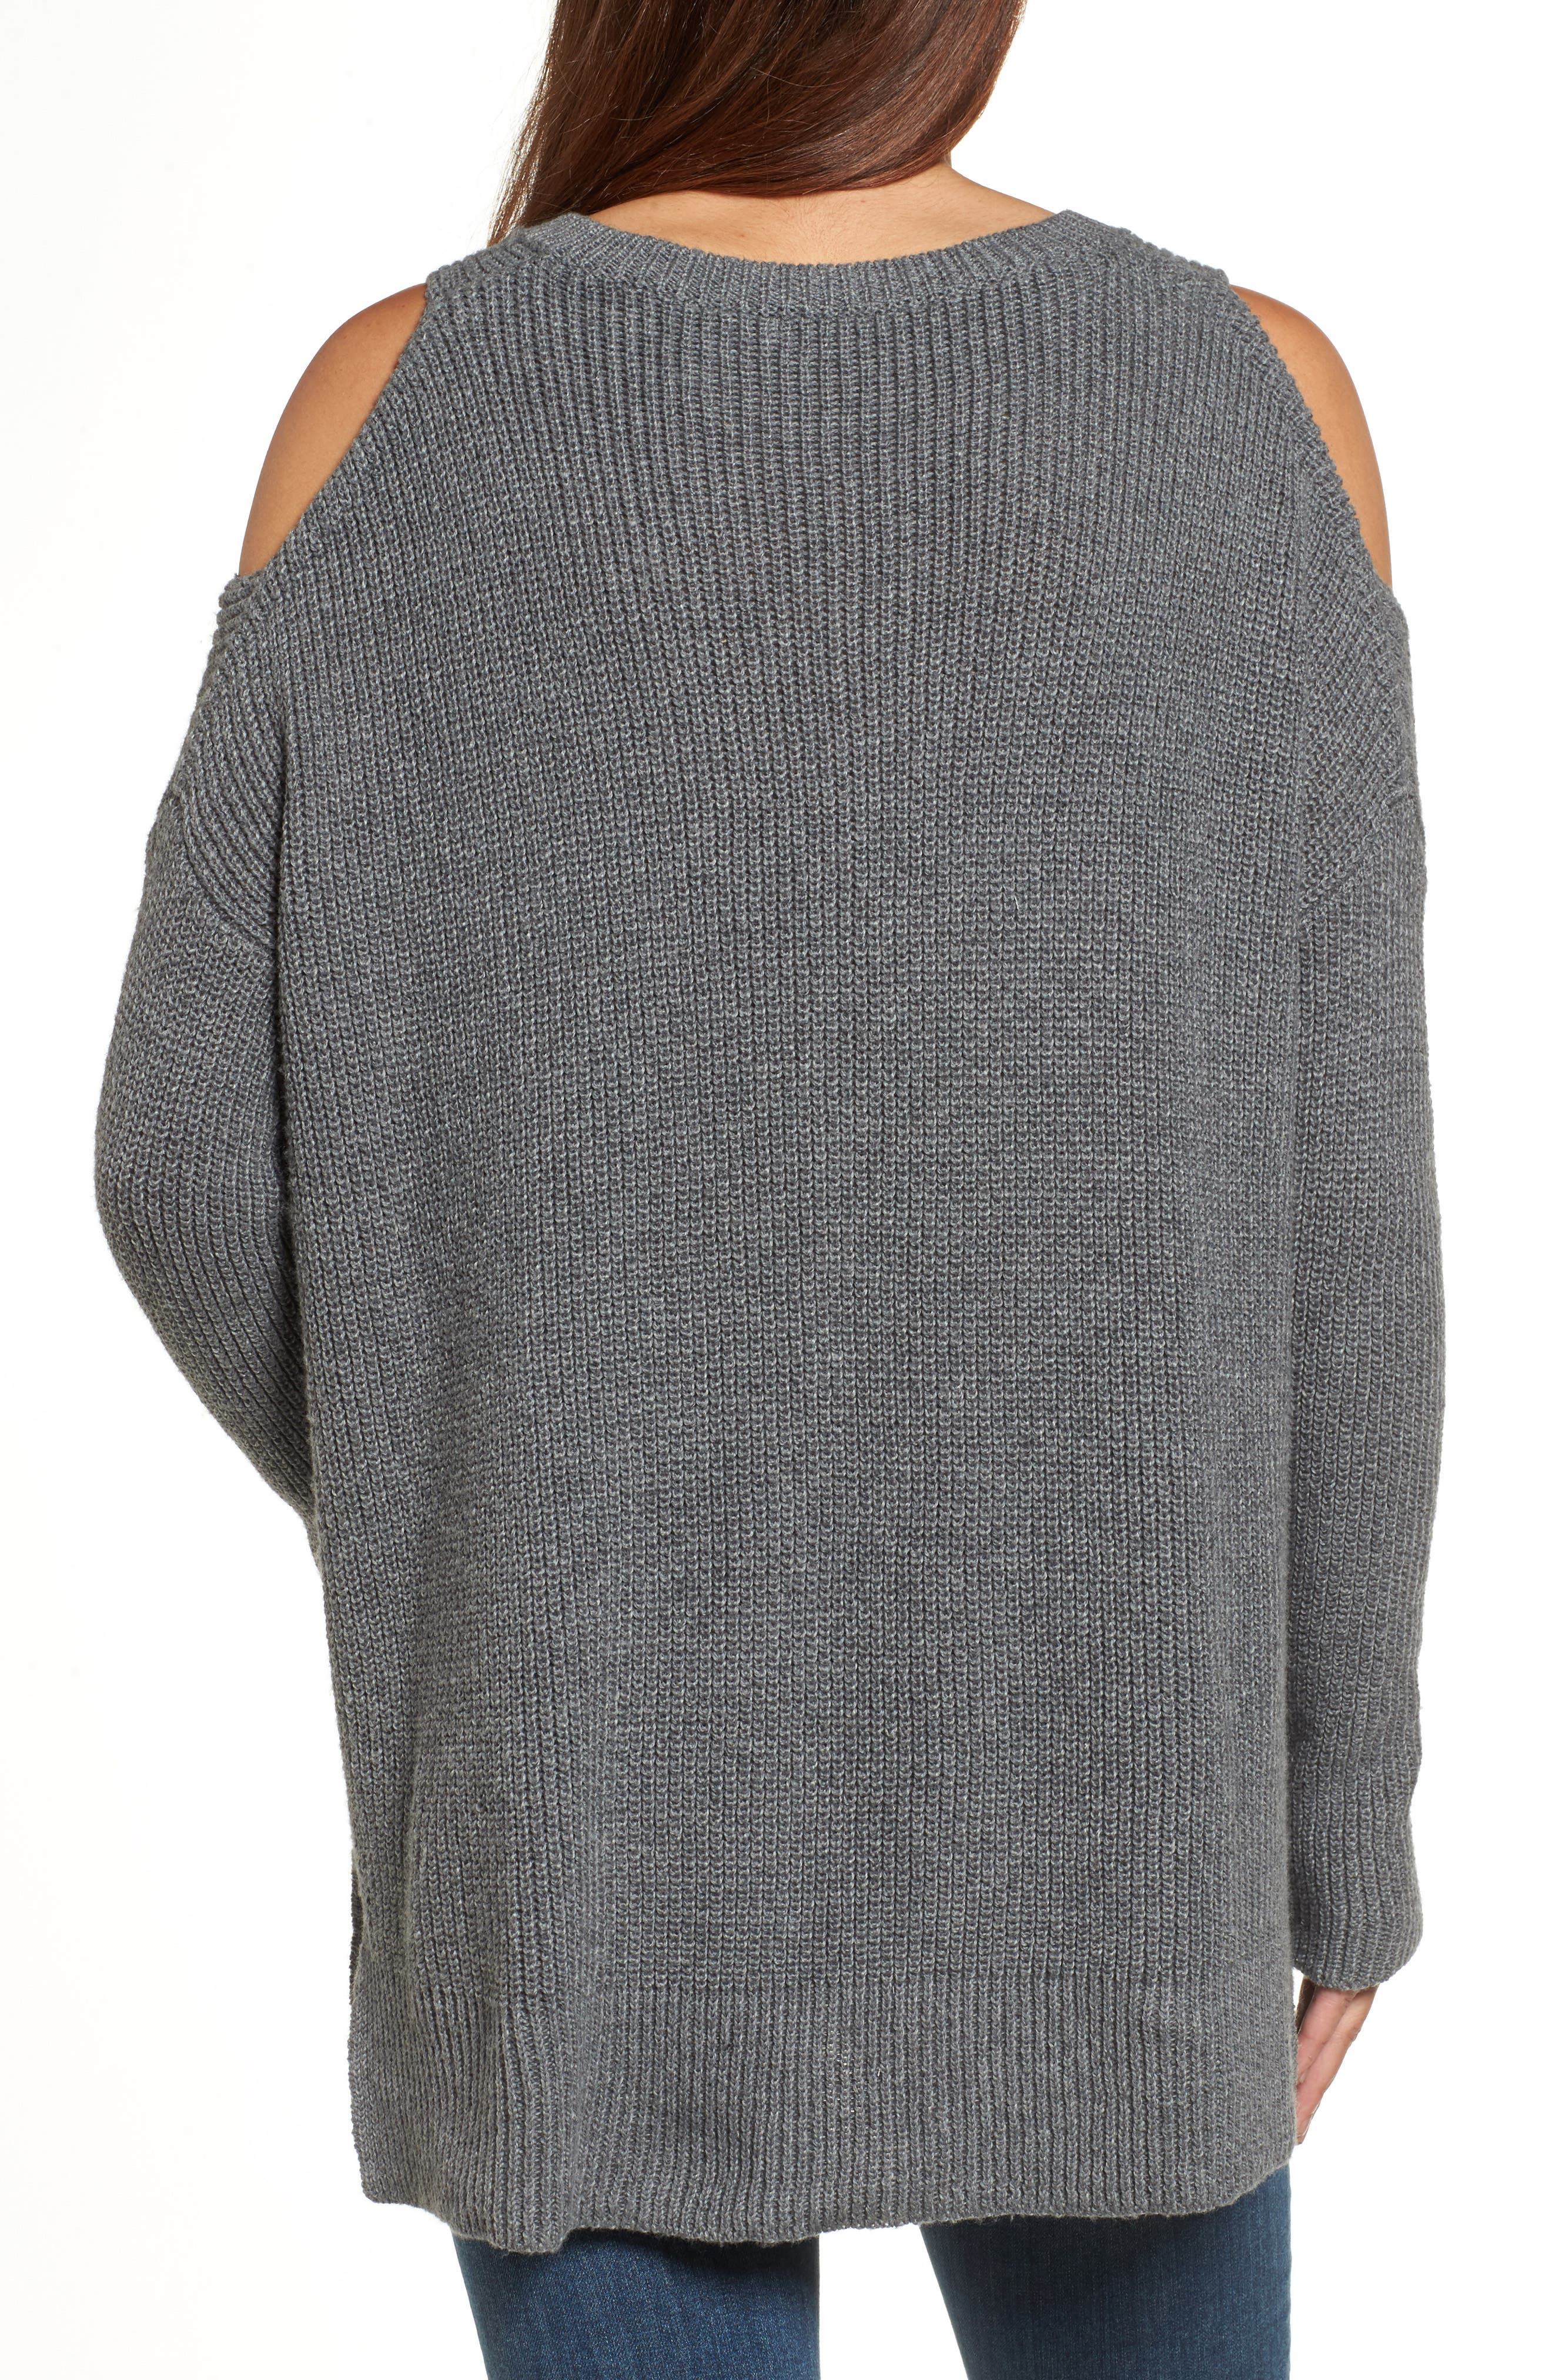 Cold Shoulder Tunic Sweater,                             Alternate thumbnail 2, color,                             020